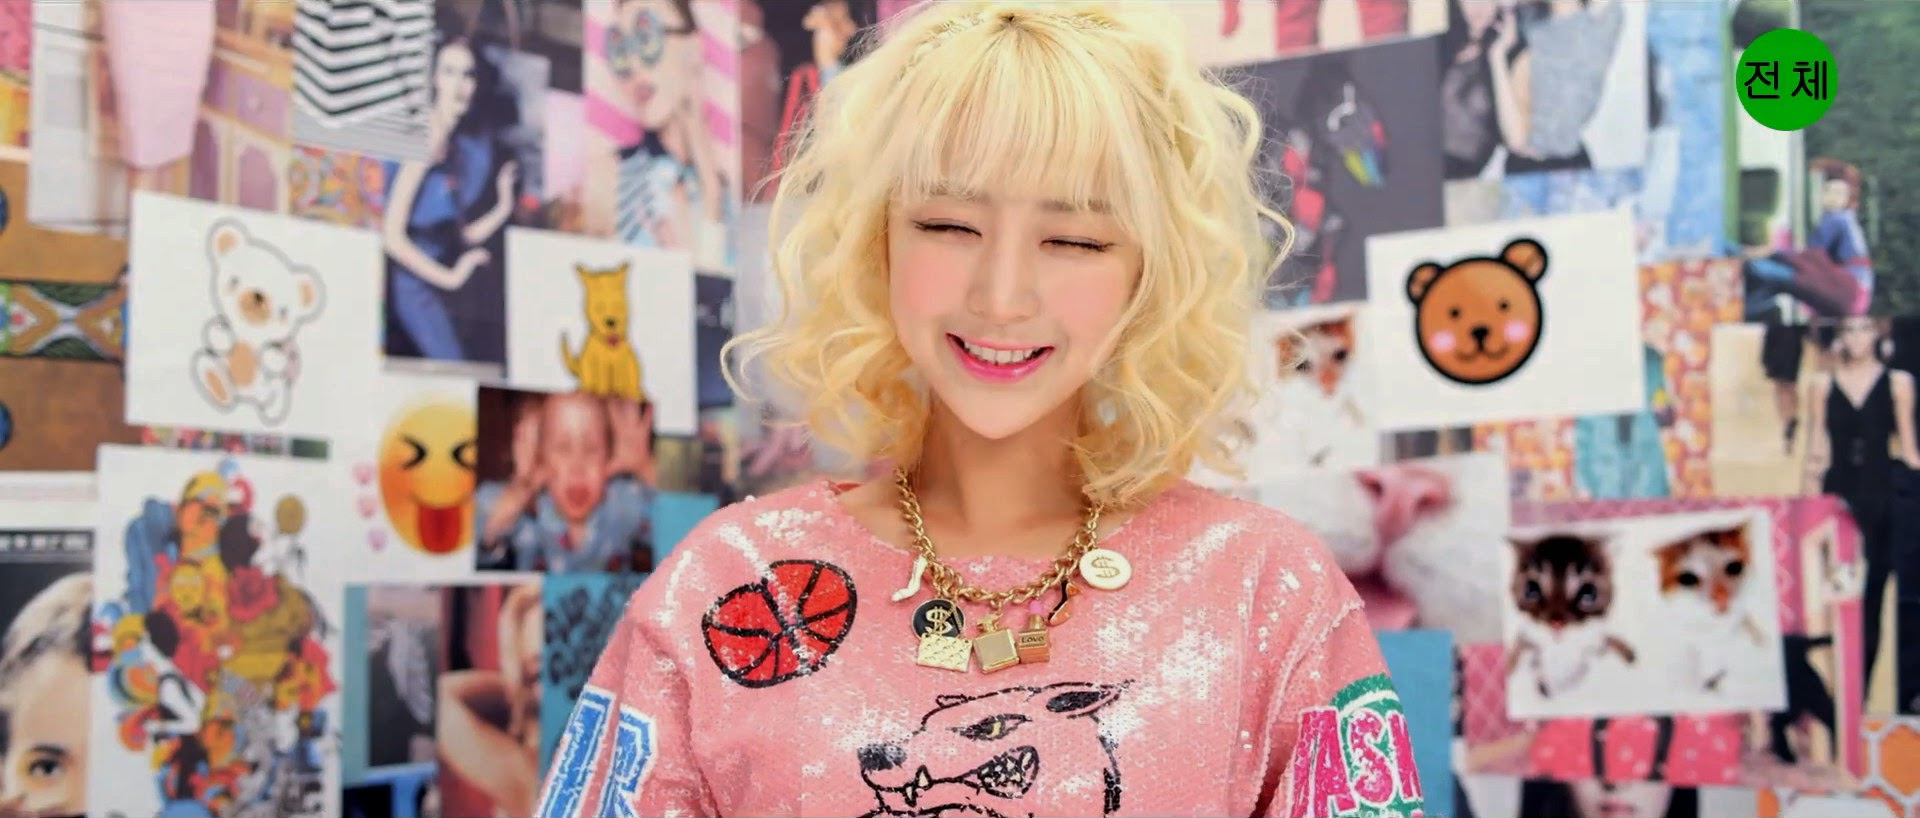 EXID's Hyelin in Ah Yeah MV